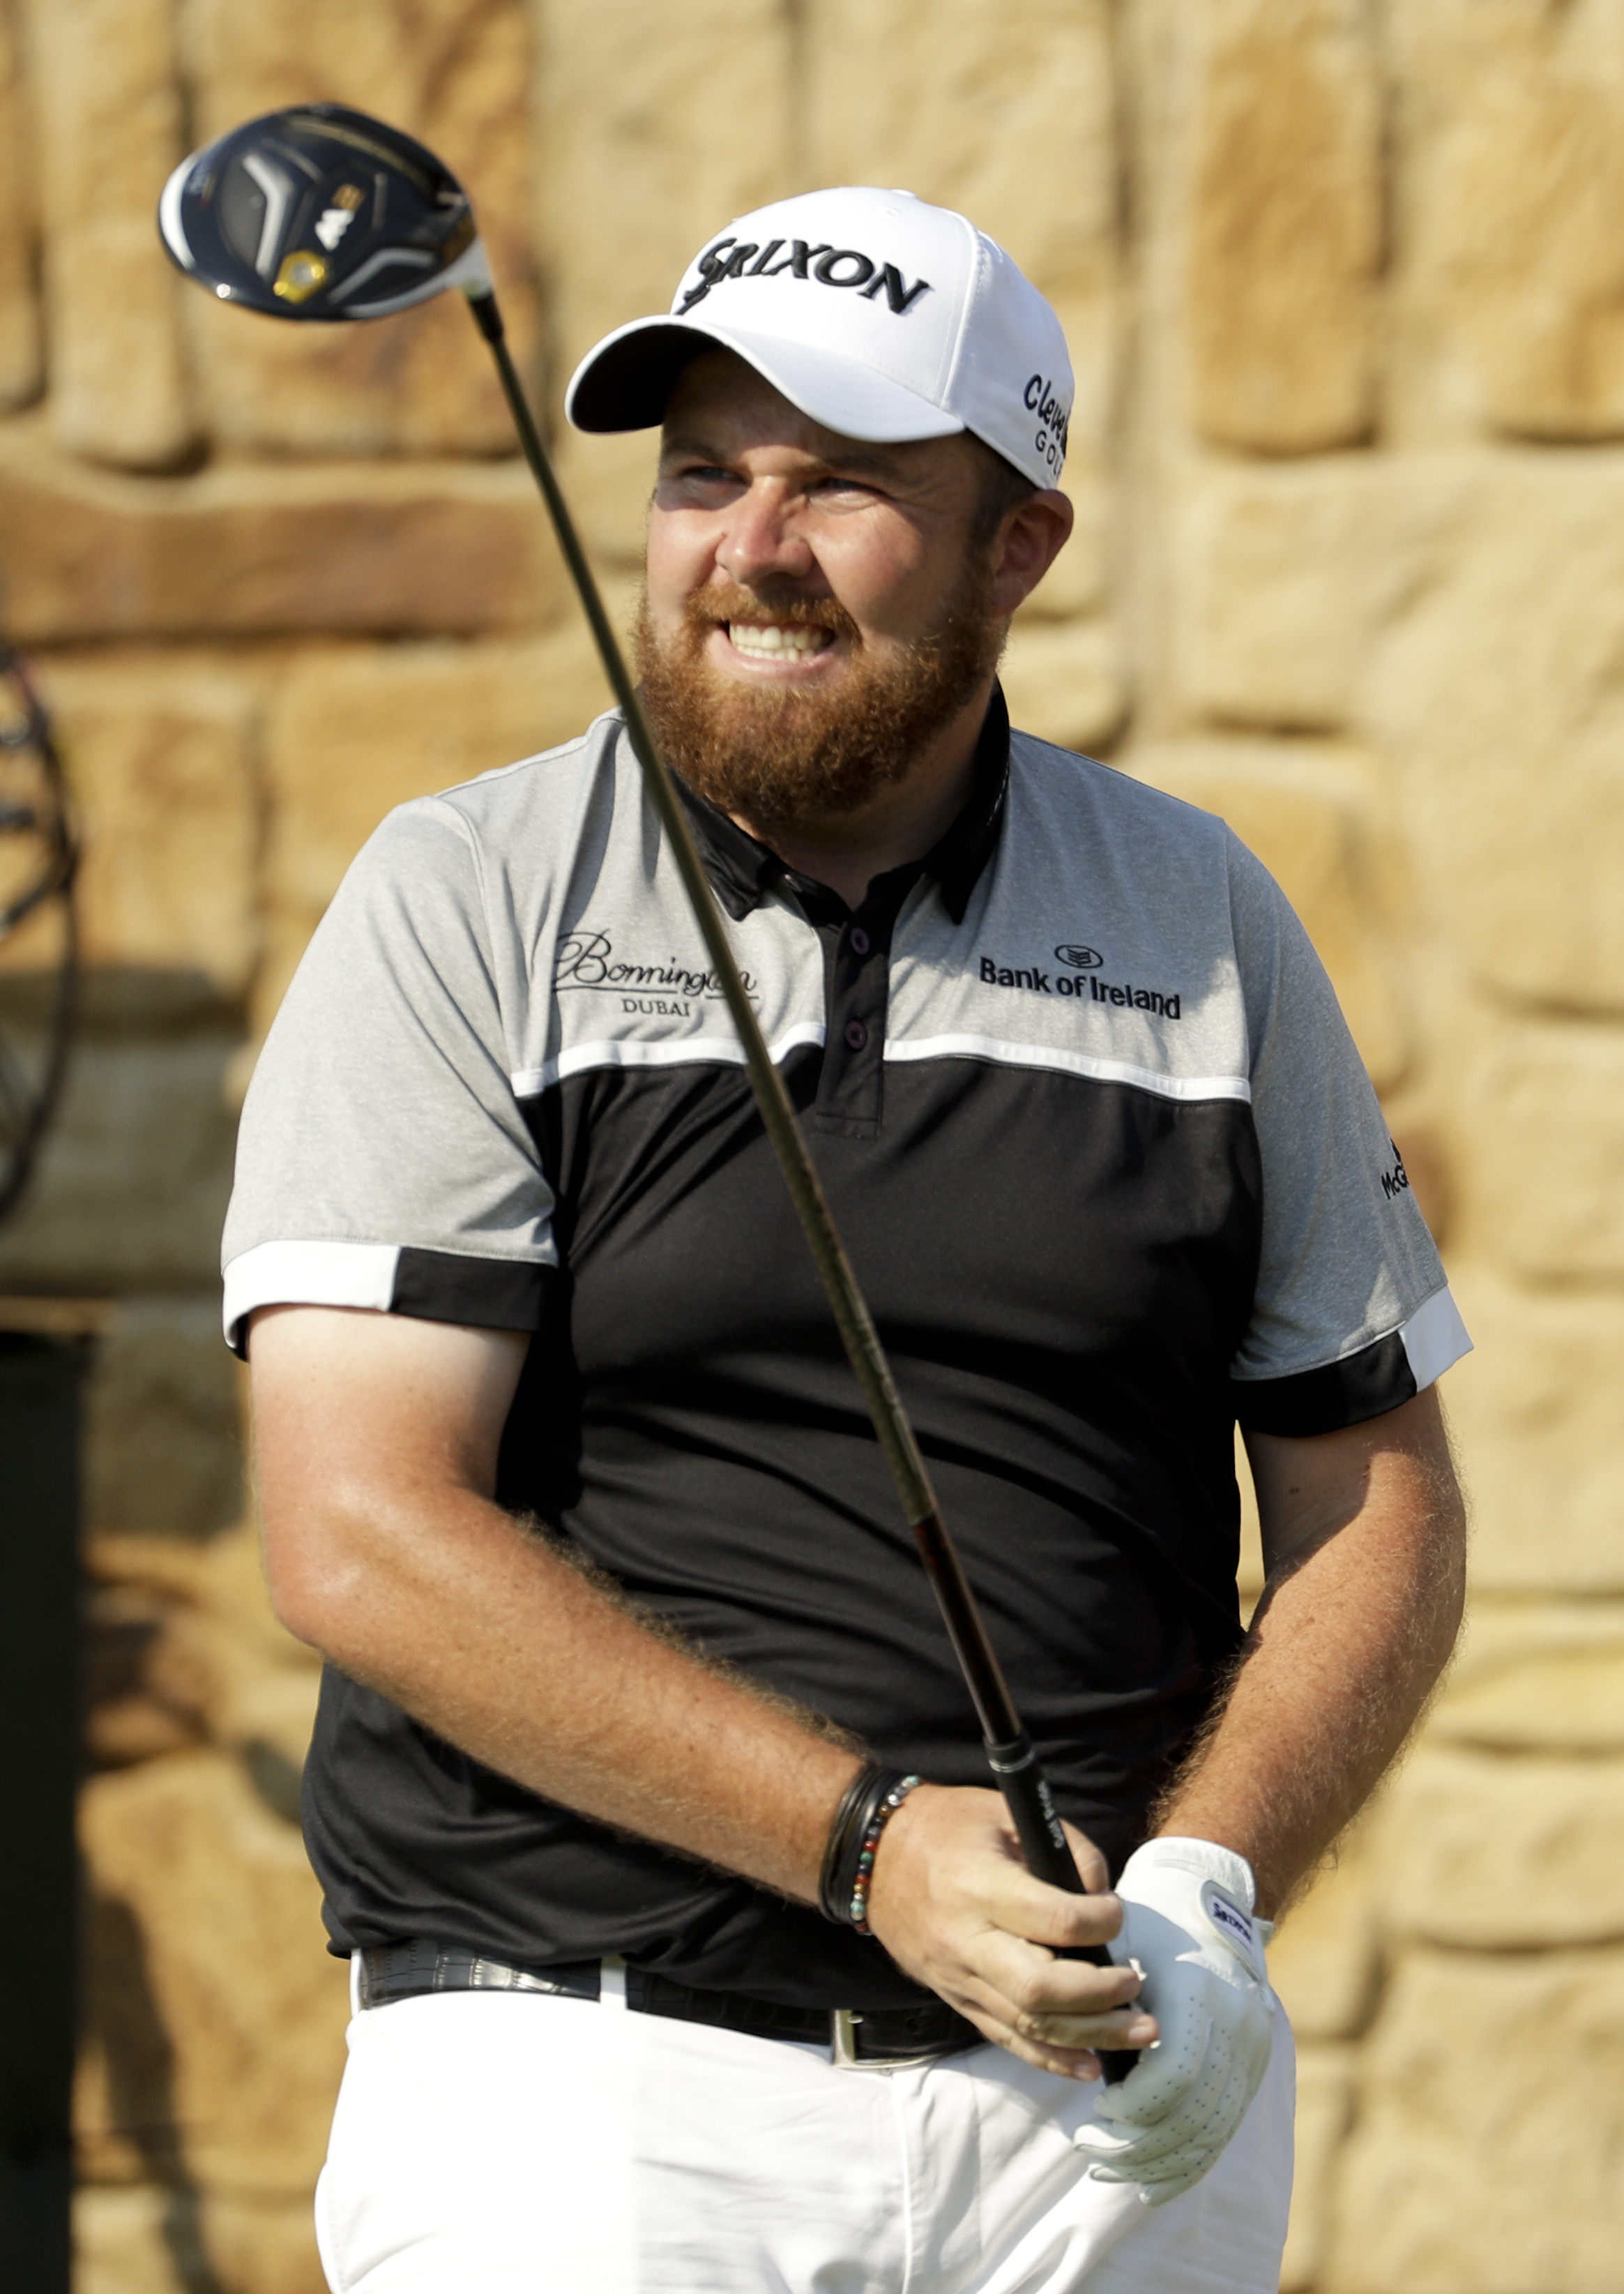 Shane Lowry, of the Republic of Ireland, watches his tee shot on the ninth hole during the final round of the U.S. Open golf championship at Oakmont Country Club on Sunday, June 19, 2016, in Oakmont, Pa. (AP Photo/Charlie Riedel)